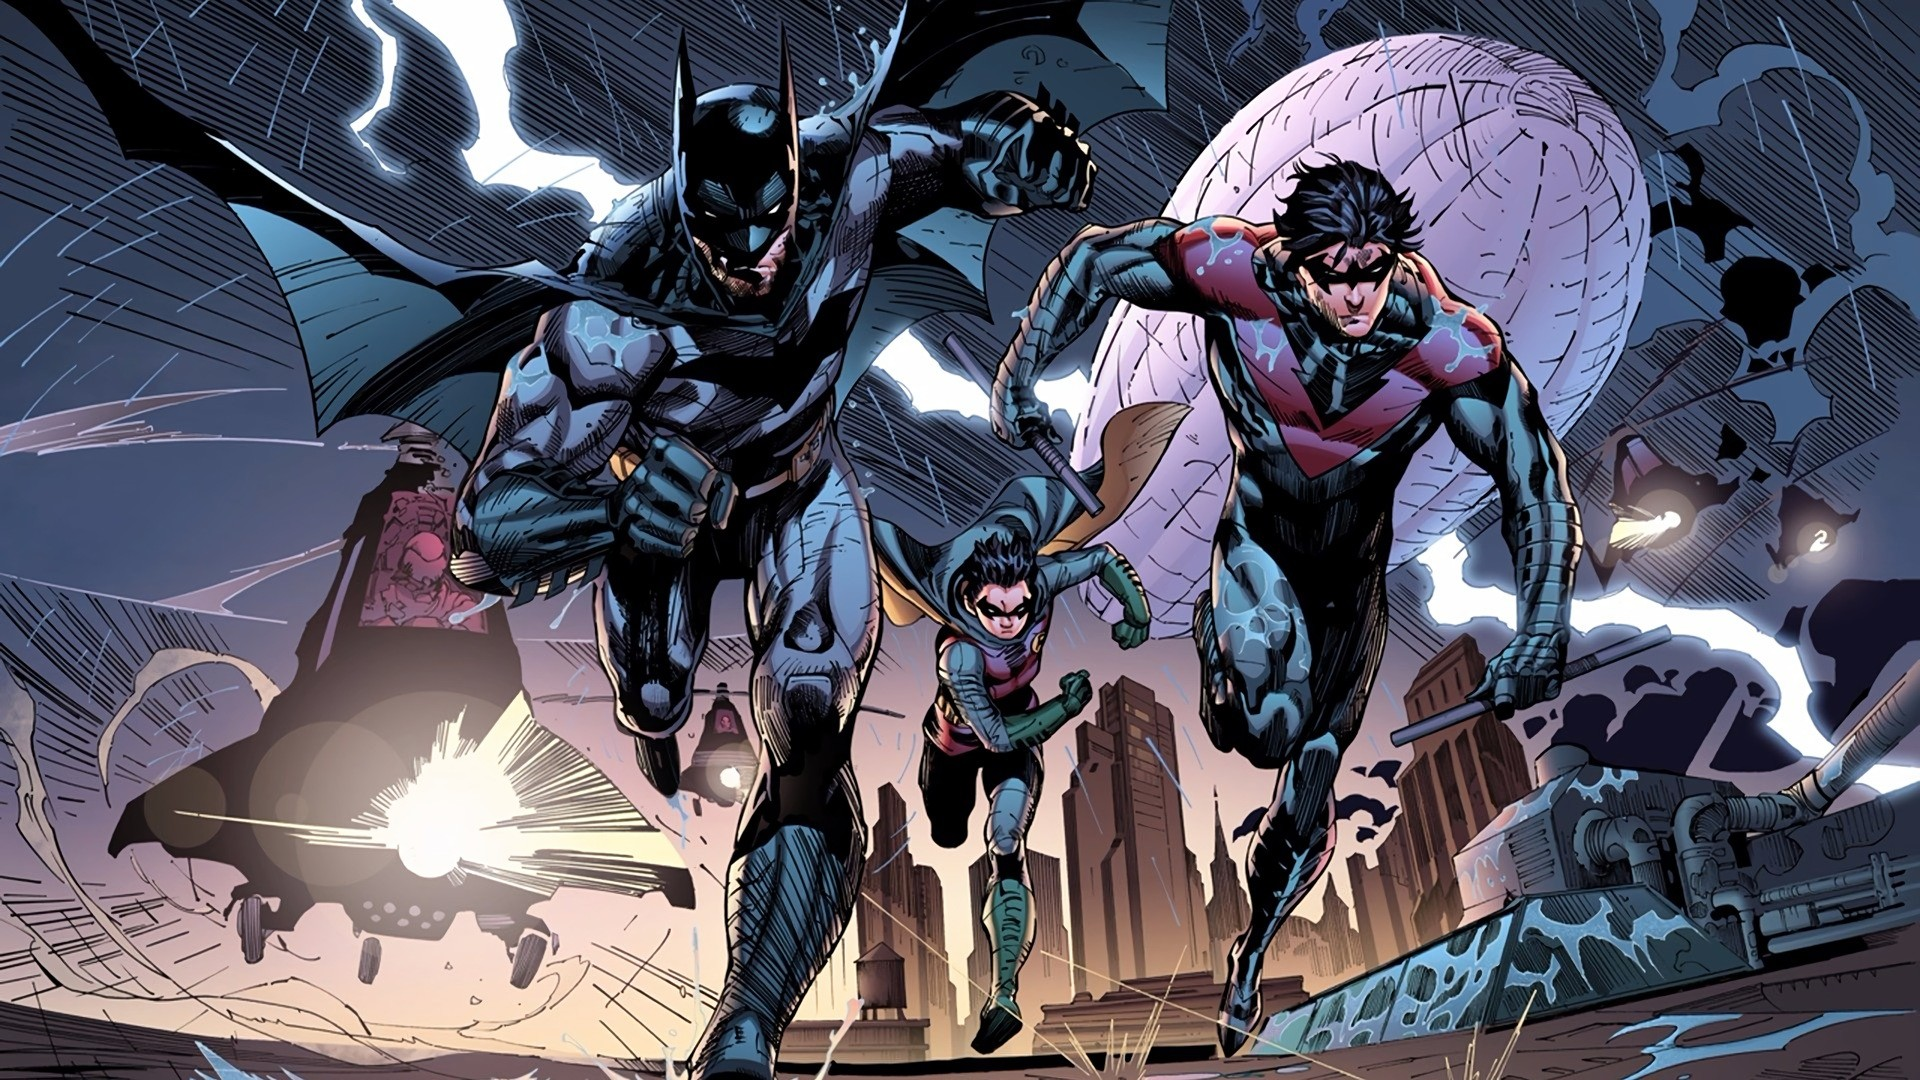 Res: 1920x1080, Comics - Batman Nightwing Robin (DC Comics) Wallpaper